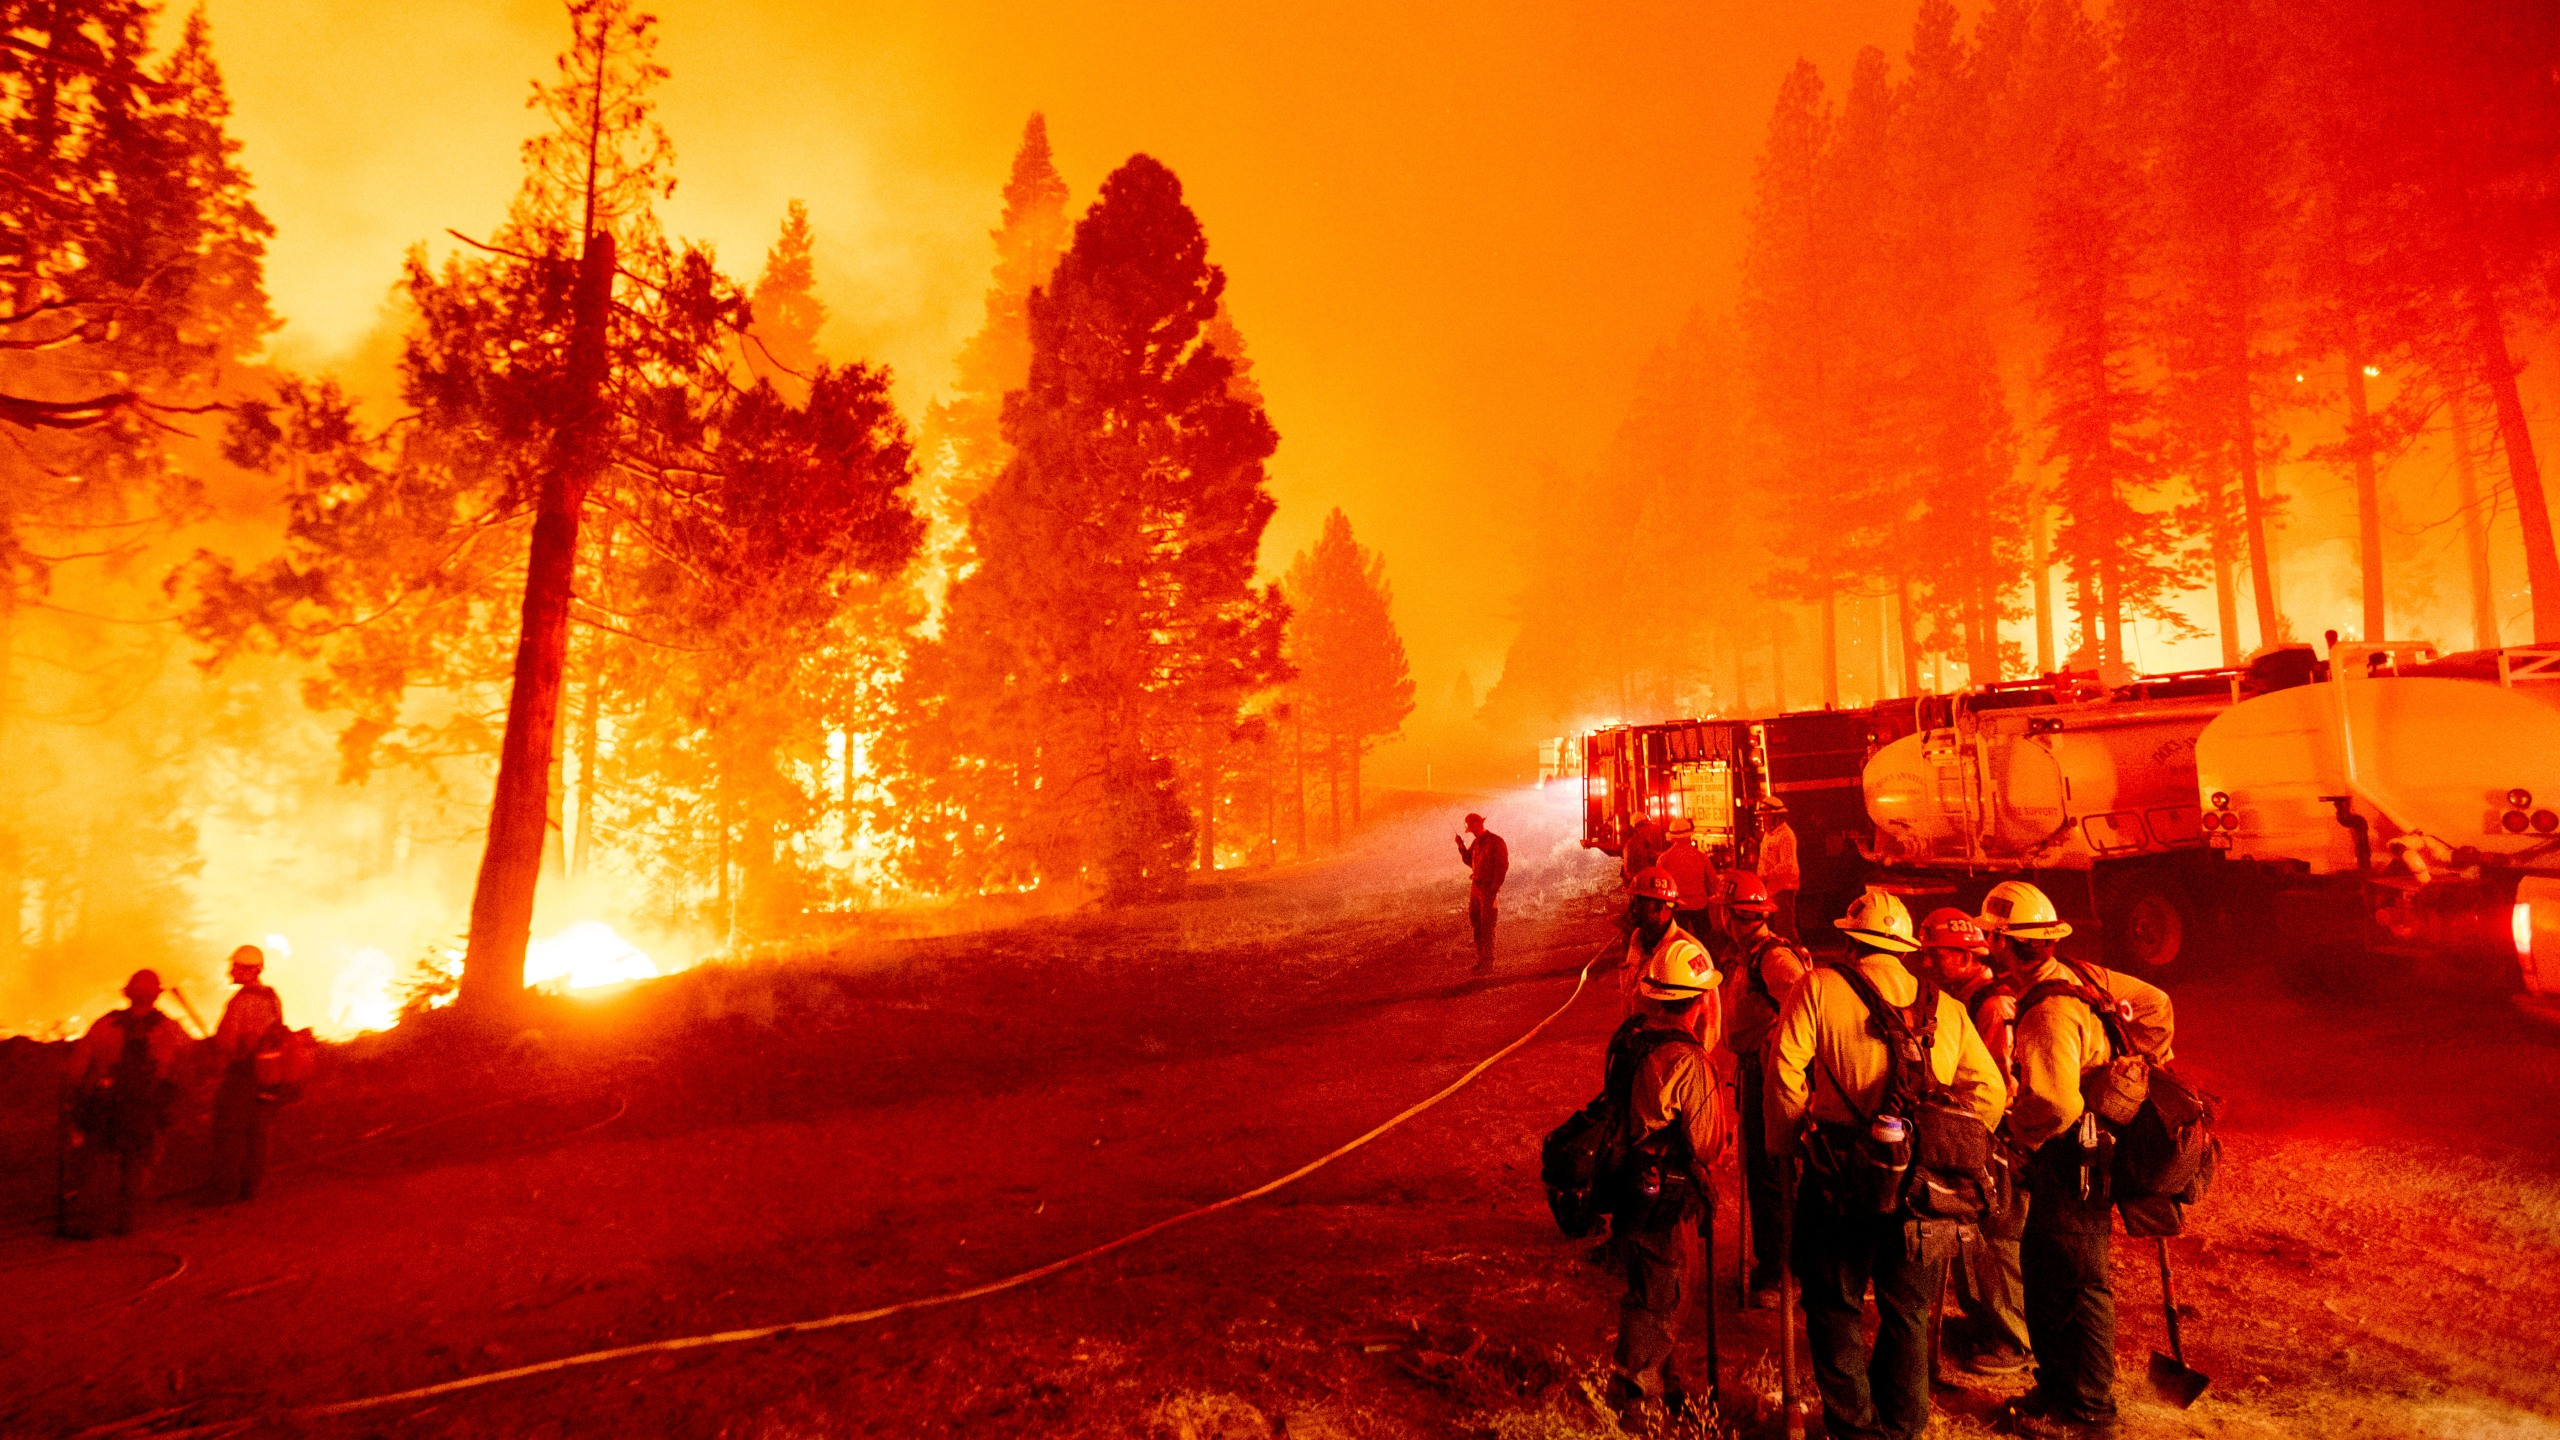 In this Thursday, Aug. 26, 2021 file photo, the Caldor Fire burns along both sides of Highway 50 as firefighters work to stop its eastward spread in Eldorado National Forest, Calif.. Last week, managers overseeing the fight against the massive wildfire scorching California's Lake Tahoe region thought they could have it contained by the start of this week. Instead, on Monday, Aug. 30, 2021, the Caldor Fire crested the Sierra Nevada, forcing the unprecedented evacuation of all 22,000 residents of South Lake Tahoe. (AP Photo/Noah Berger, File)